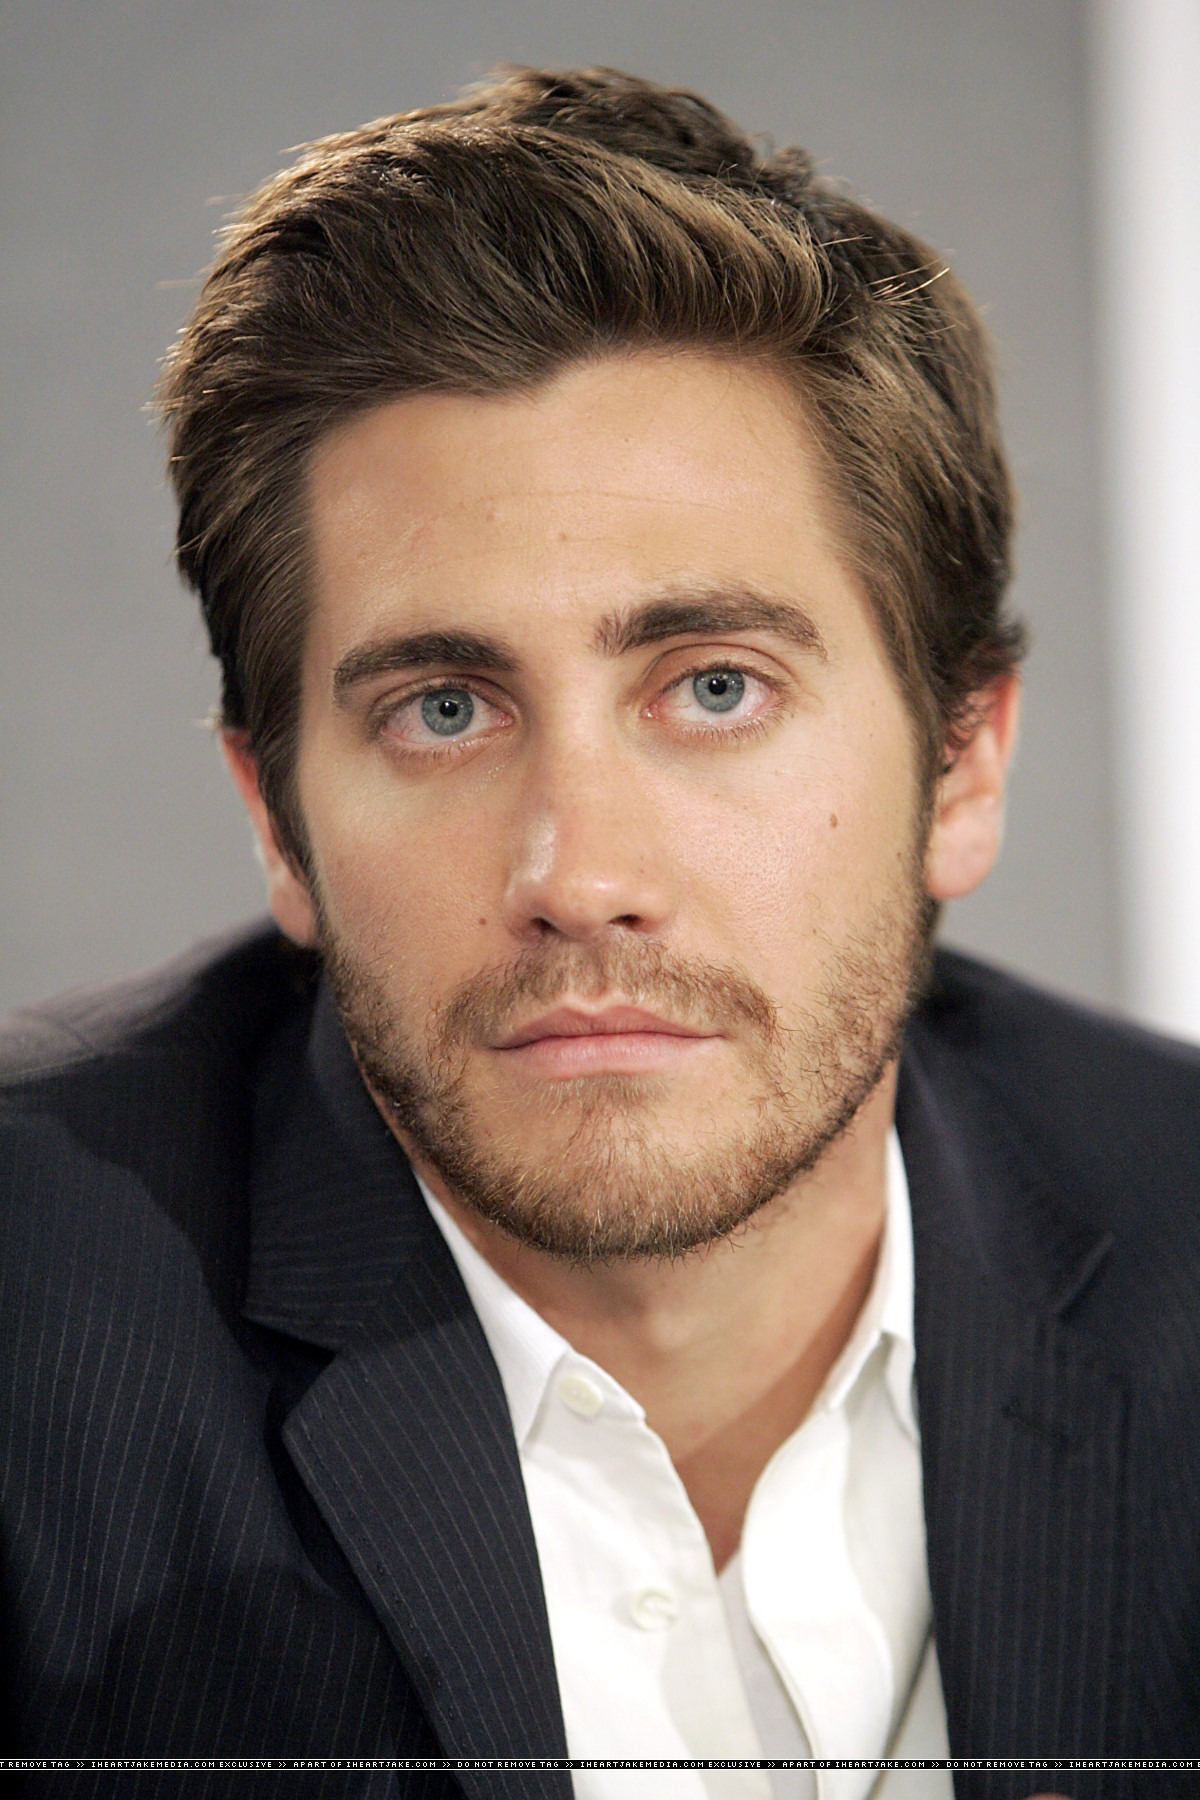 Jake Gyllenhaal - Jake Gyllenhaal Photo (27438439) - Fanpop Jake Gyllenhaal